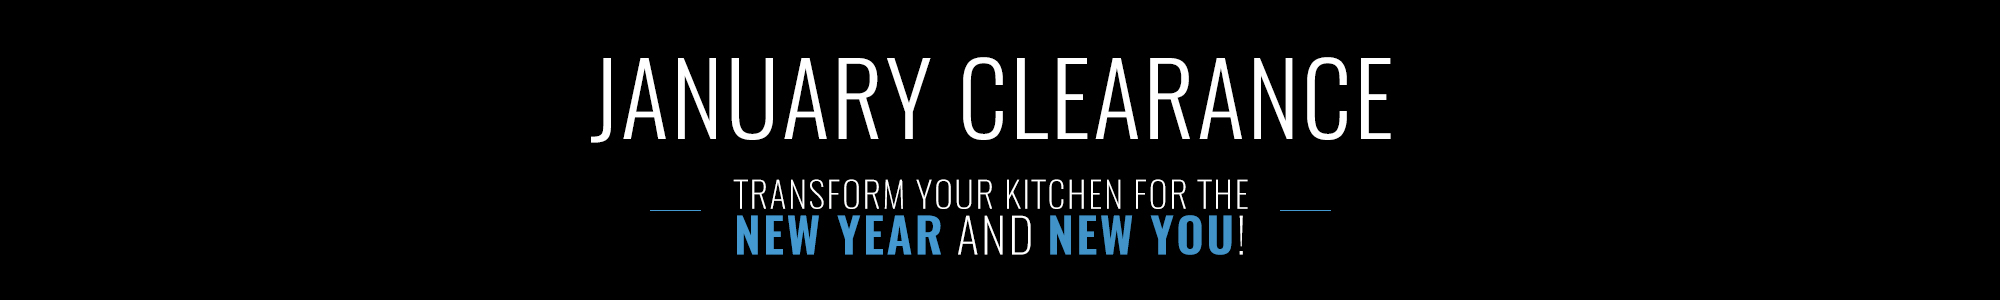 January Clearance - New Year, New You